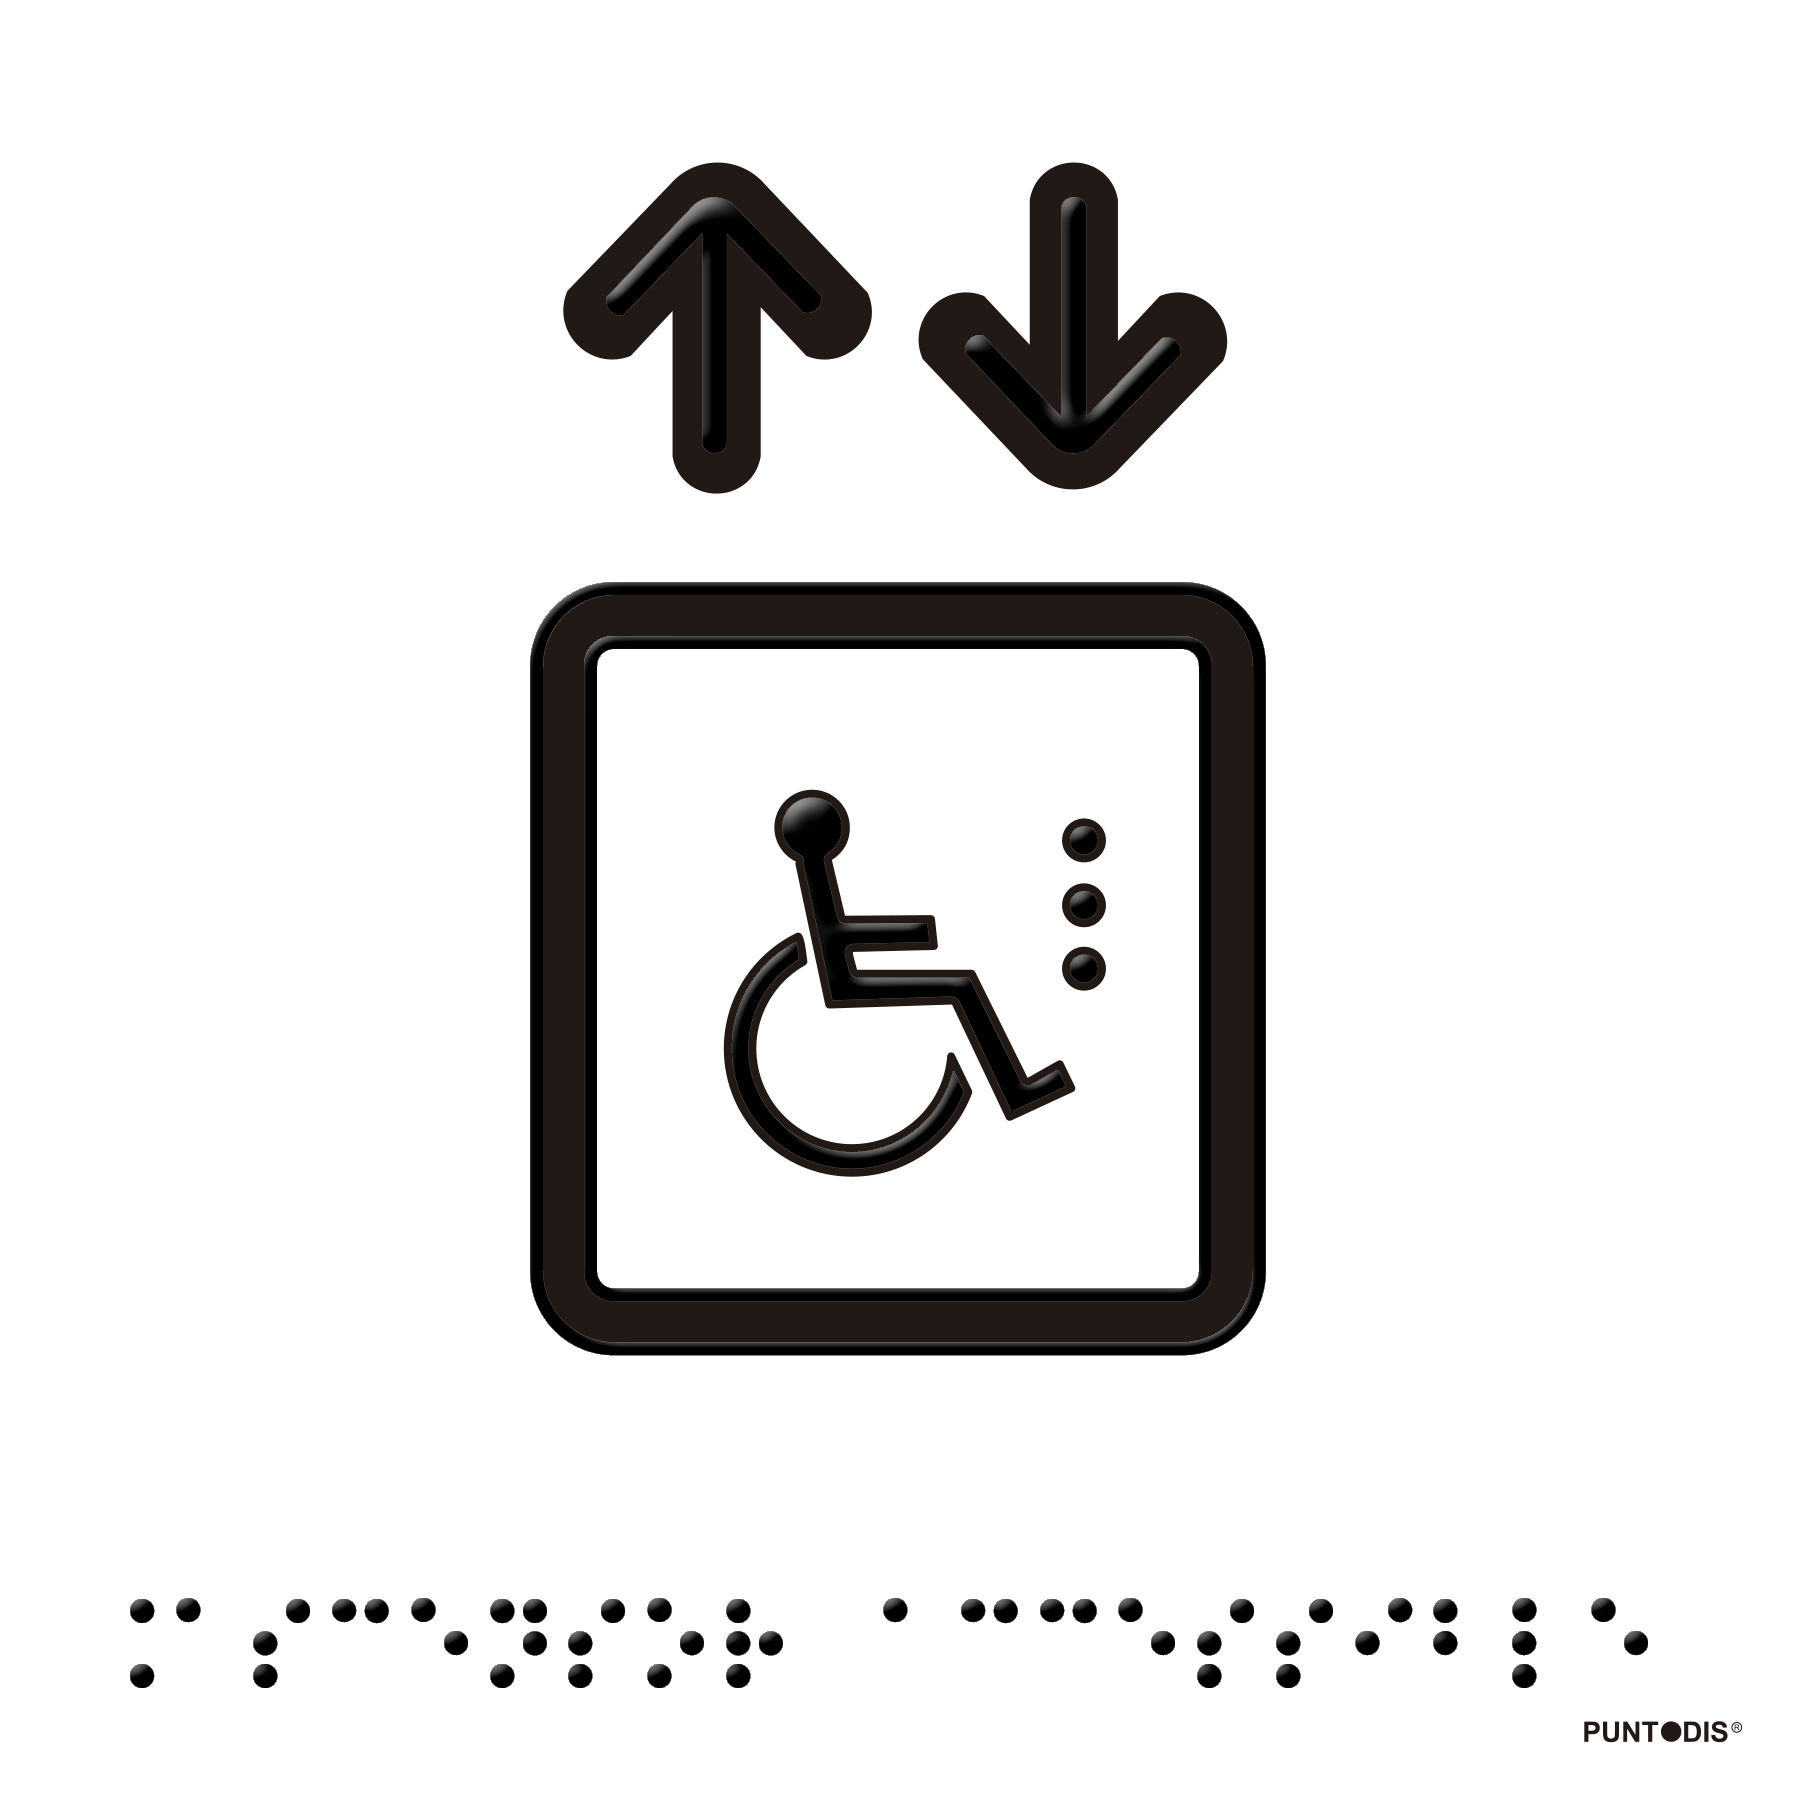 placa ascensor accesible braille